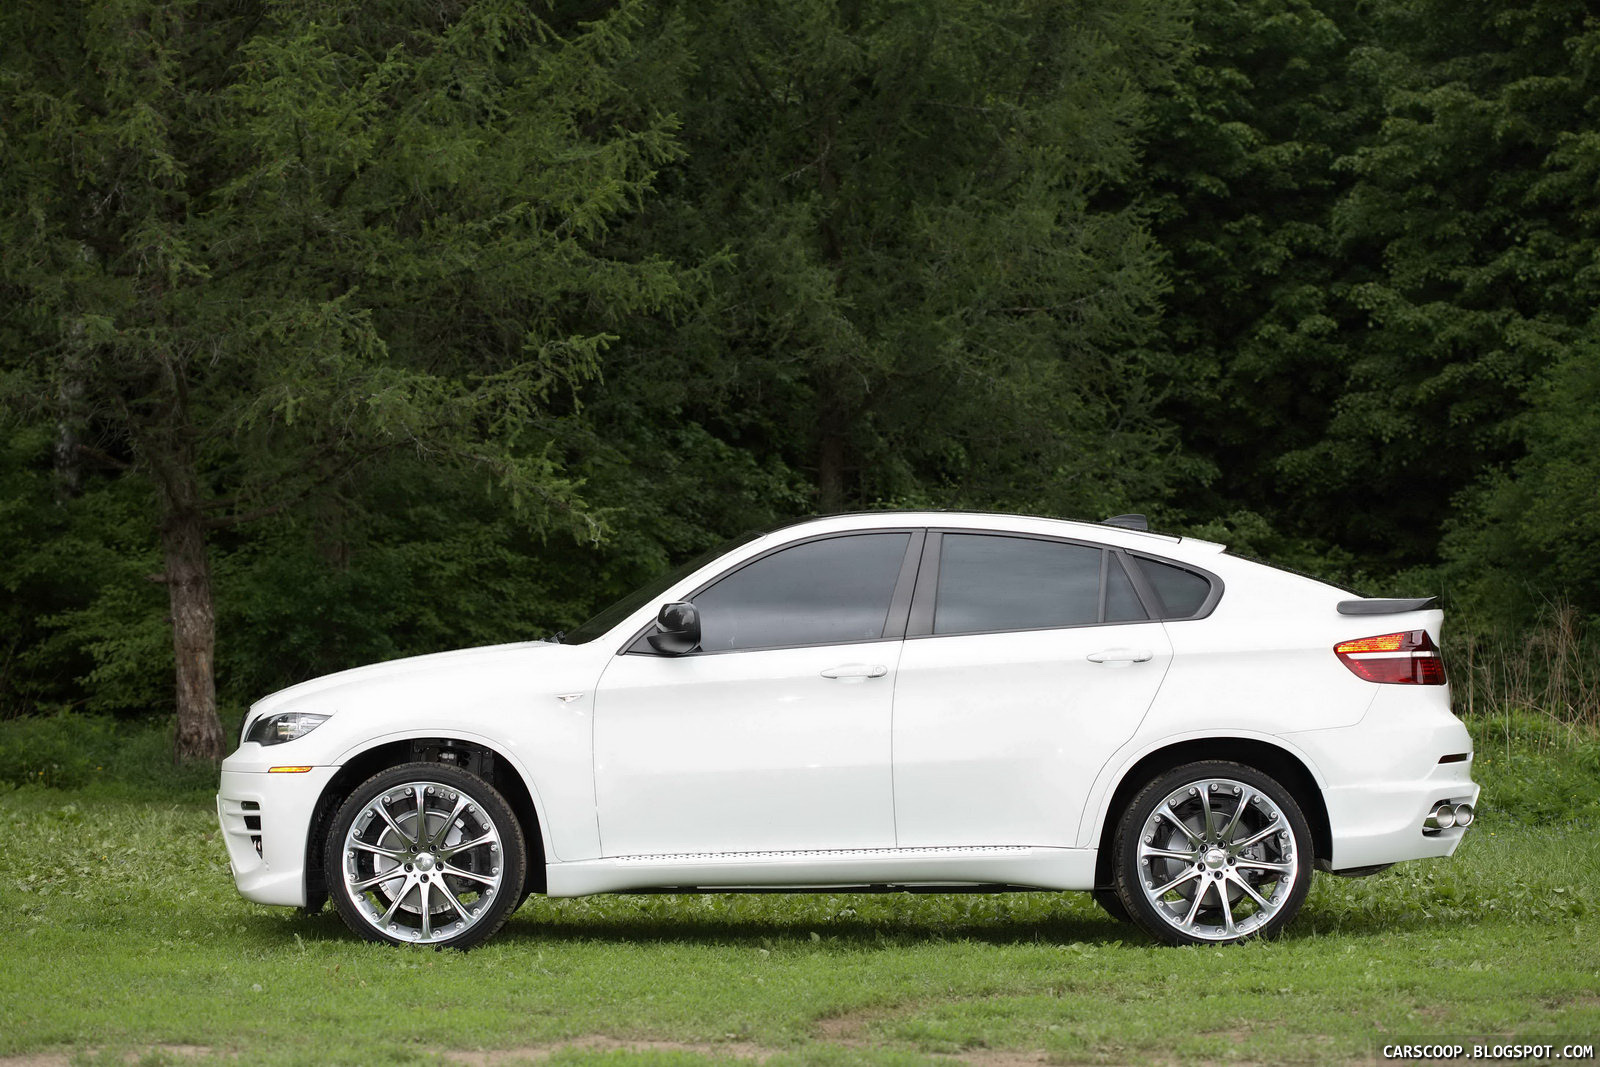 Carscoop Russian Tuner Status Design Does The Bmw X6 Sav